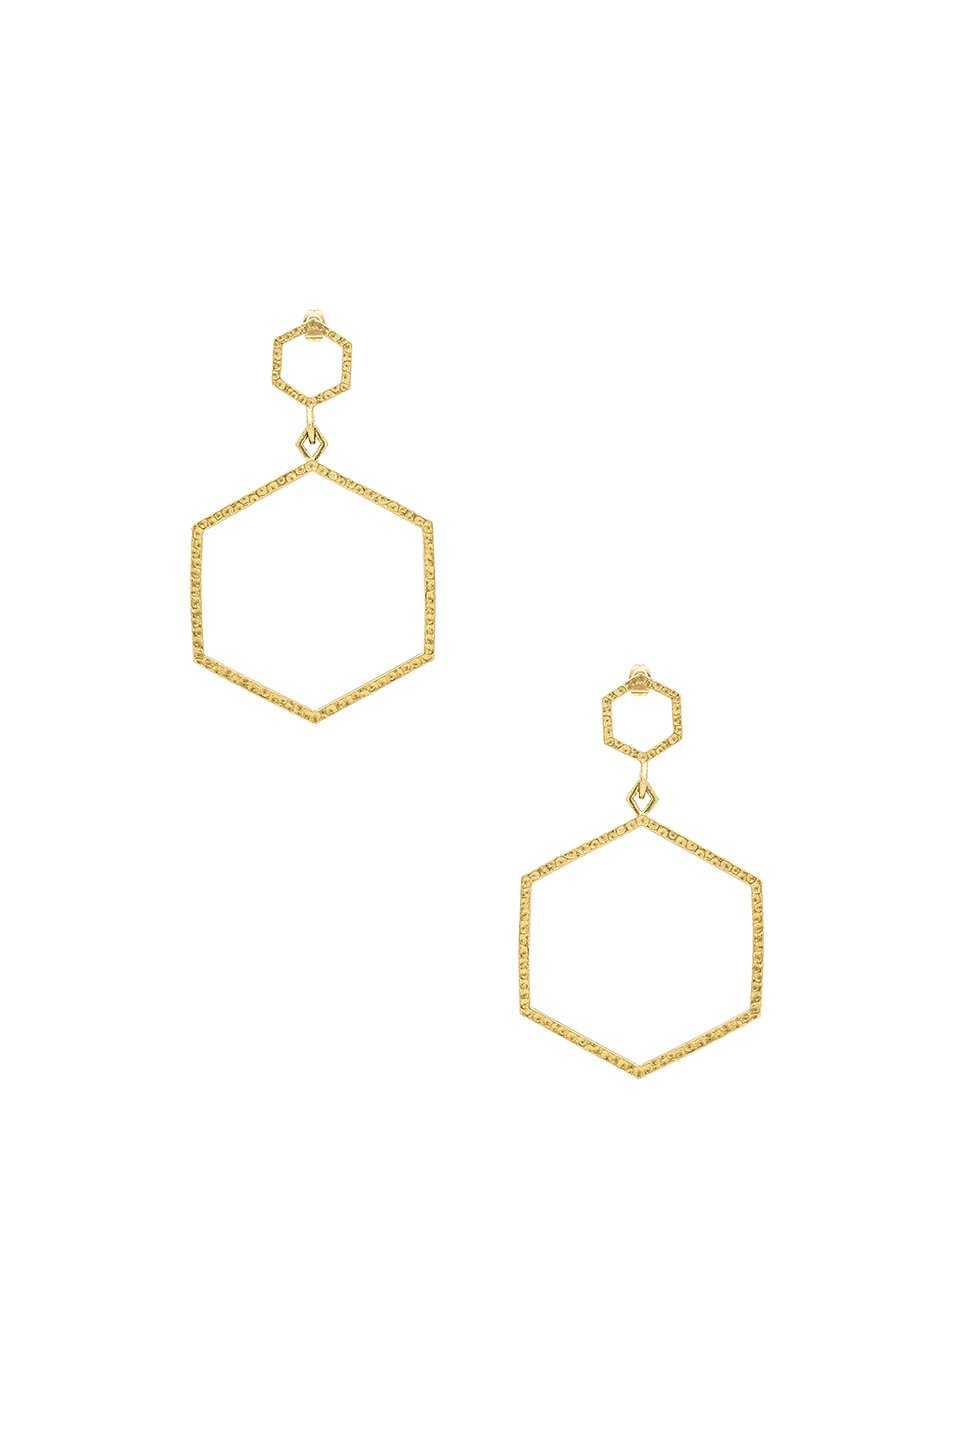 The Hammered Hex Statement Earrings